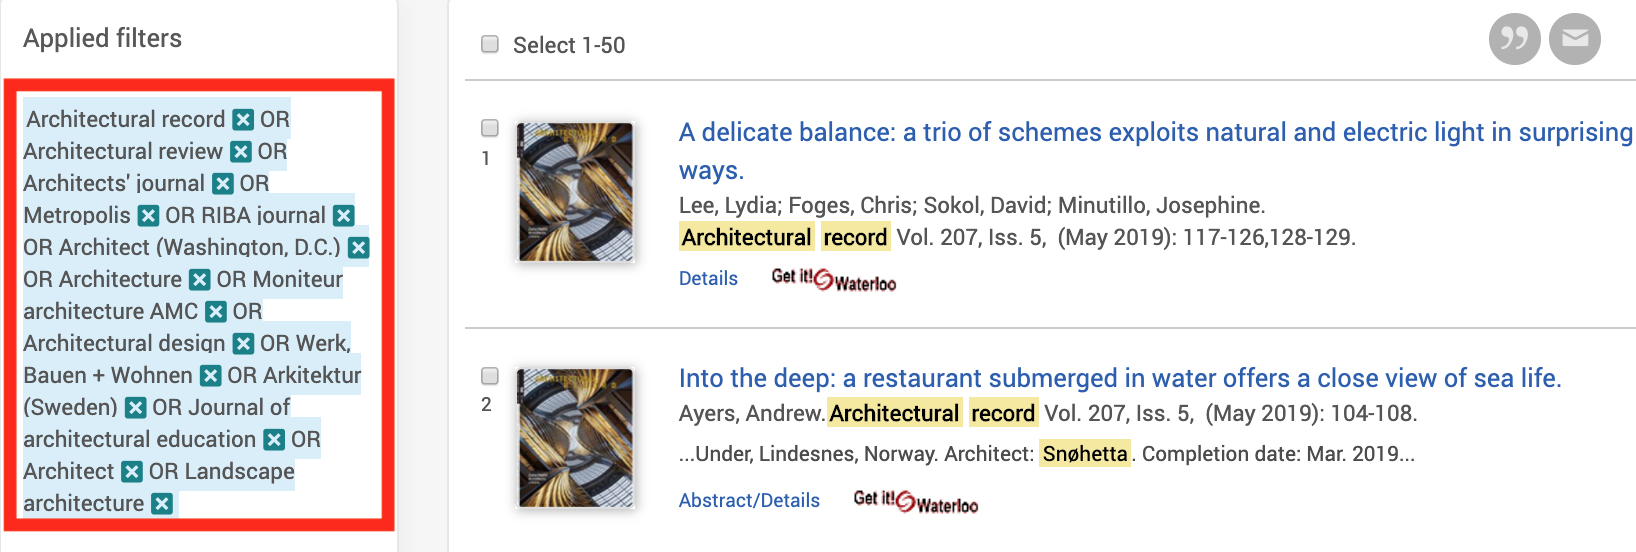 Screenshot of Avery Index search results with 'Publication title' filter shown as applied